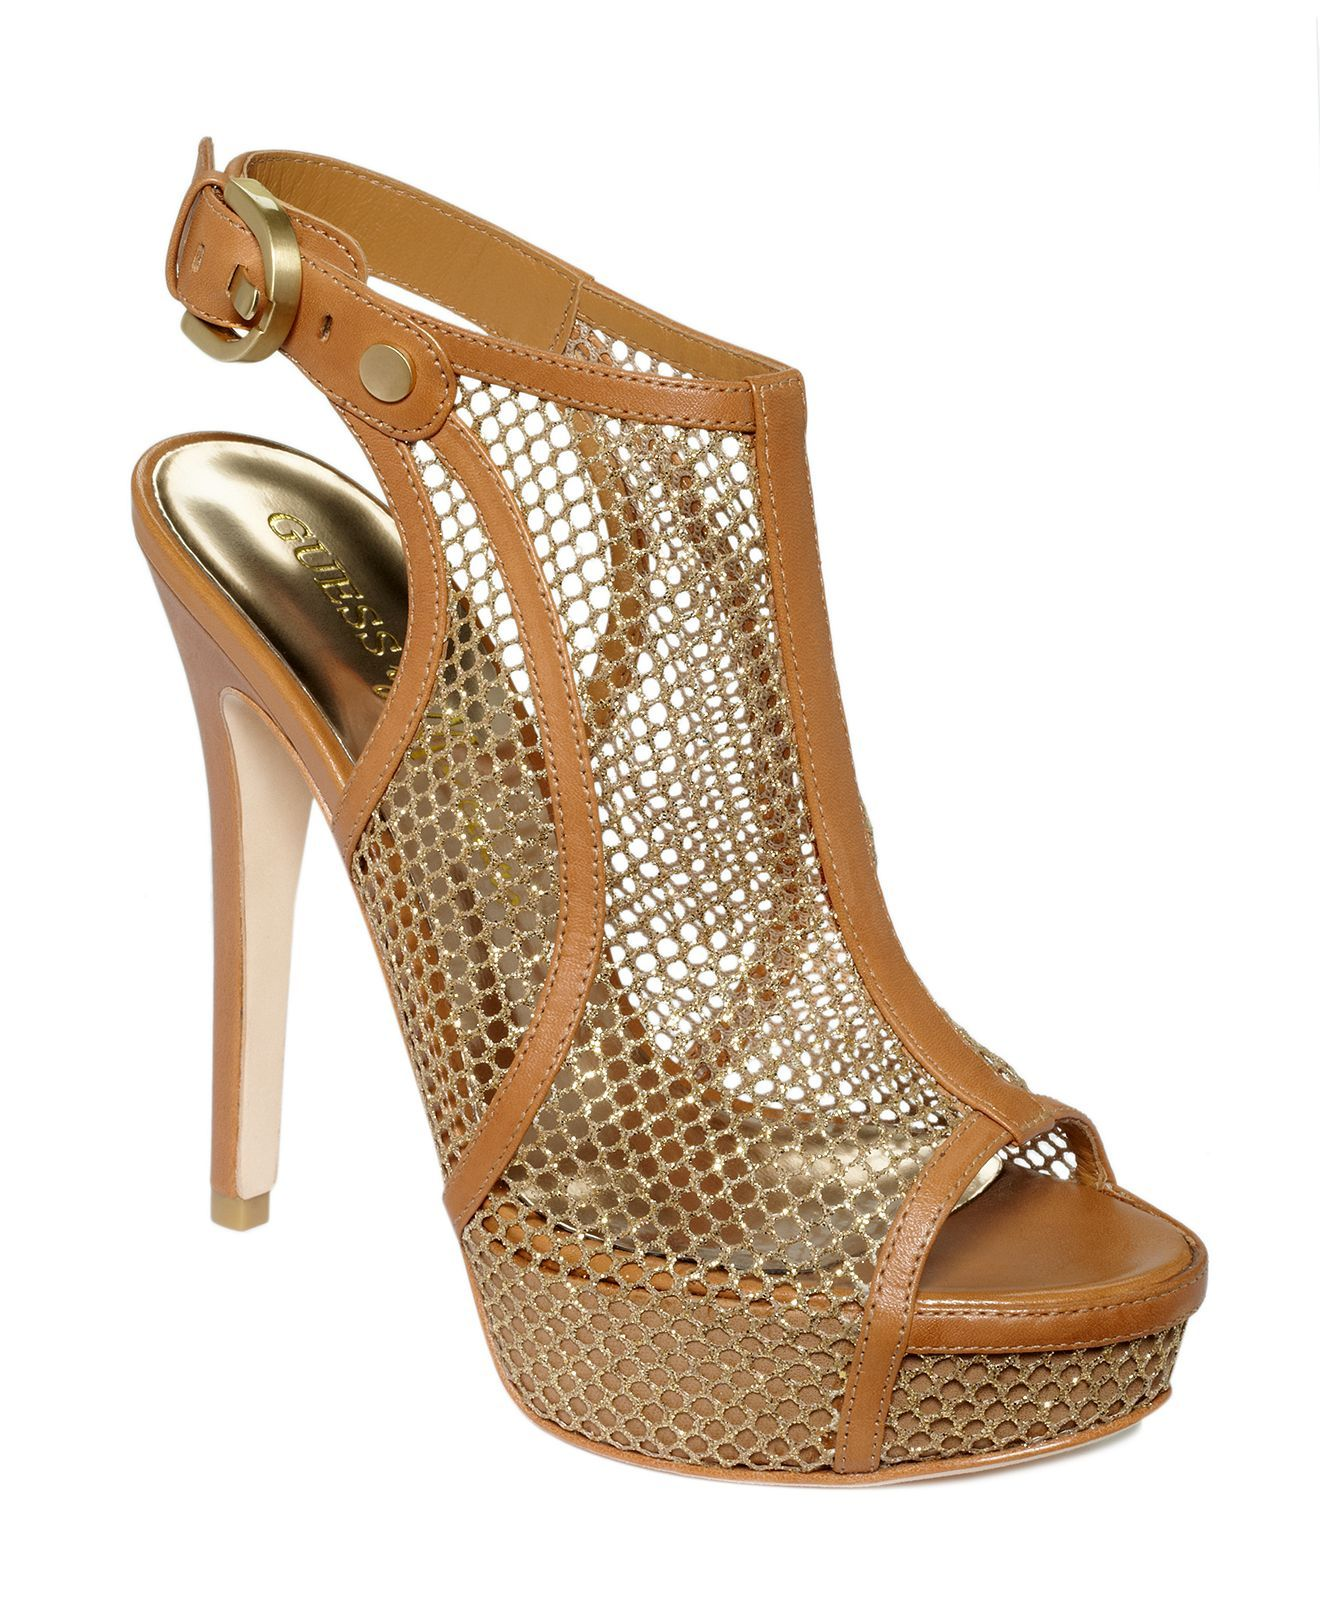 GUESS BY MARCIANO Sandals Light brown Women